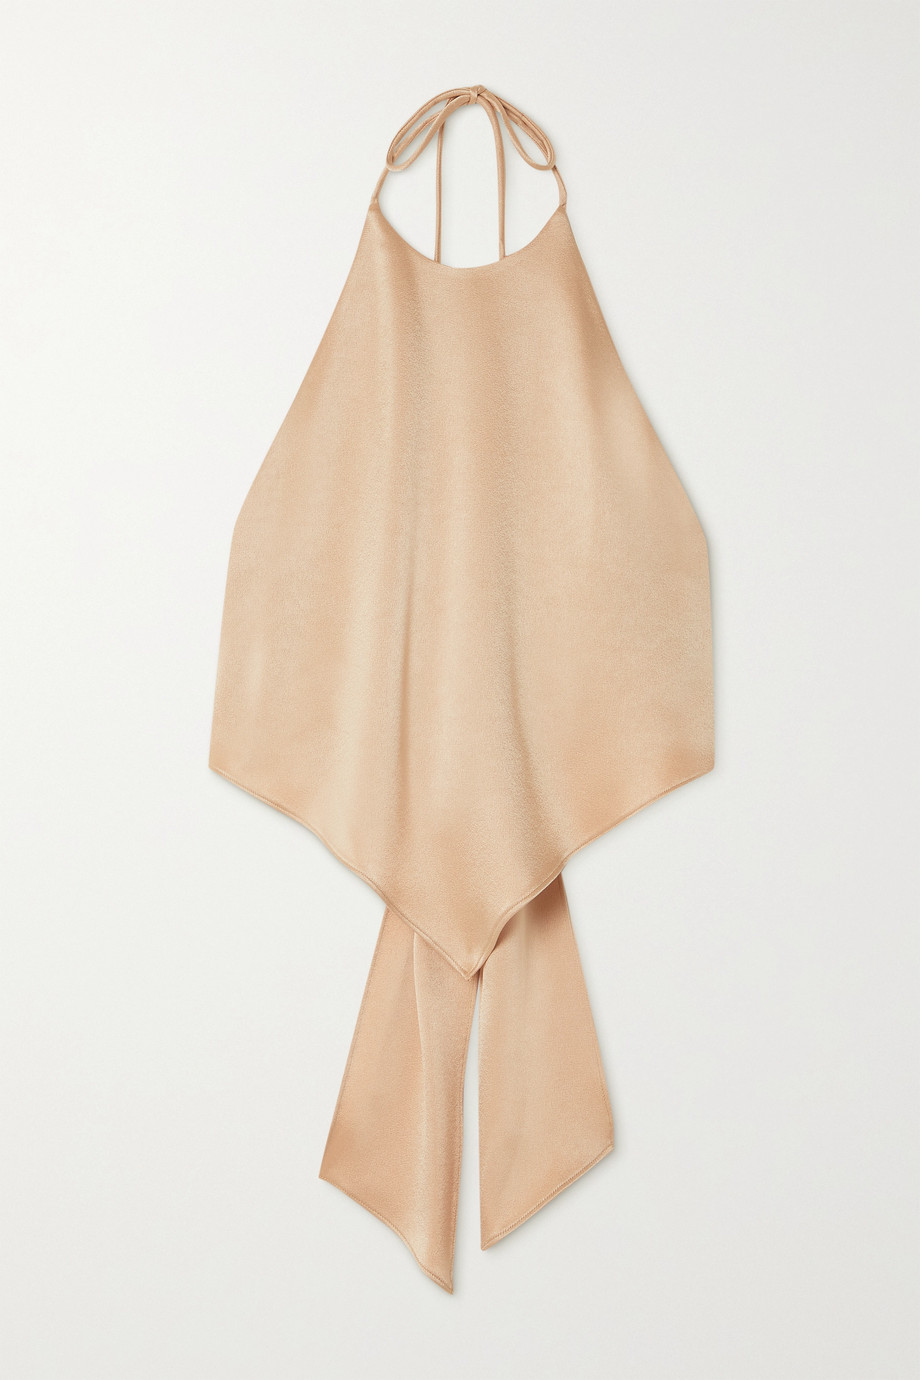 Alice + Olivia Frenchie bow-detailed satin halterneck top